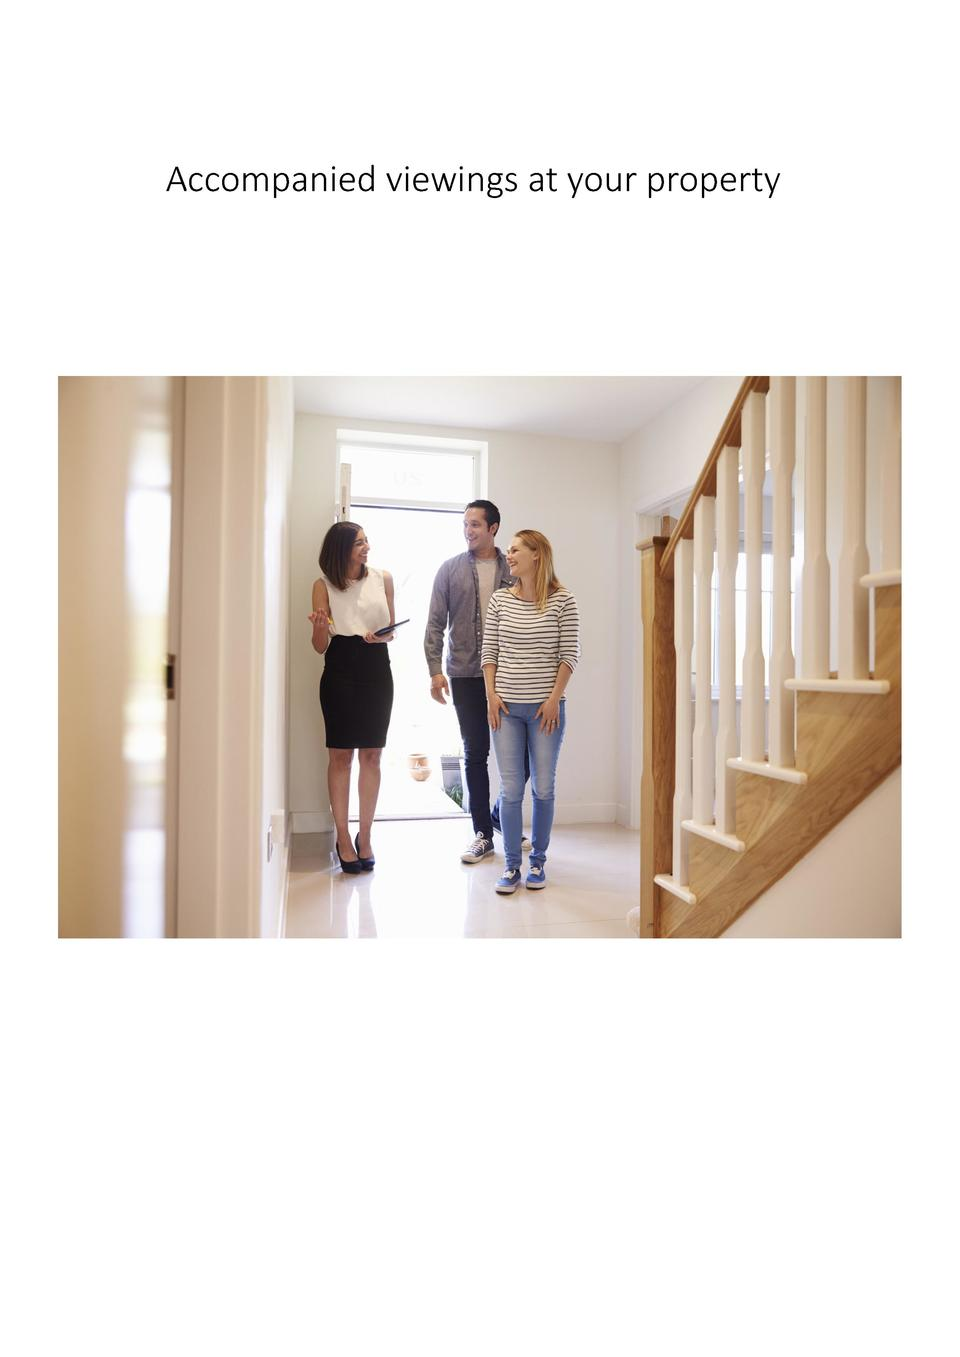 Accompanied viewings at your property